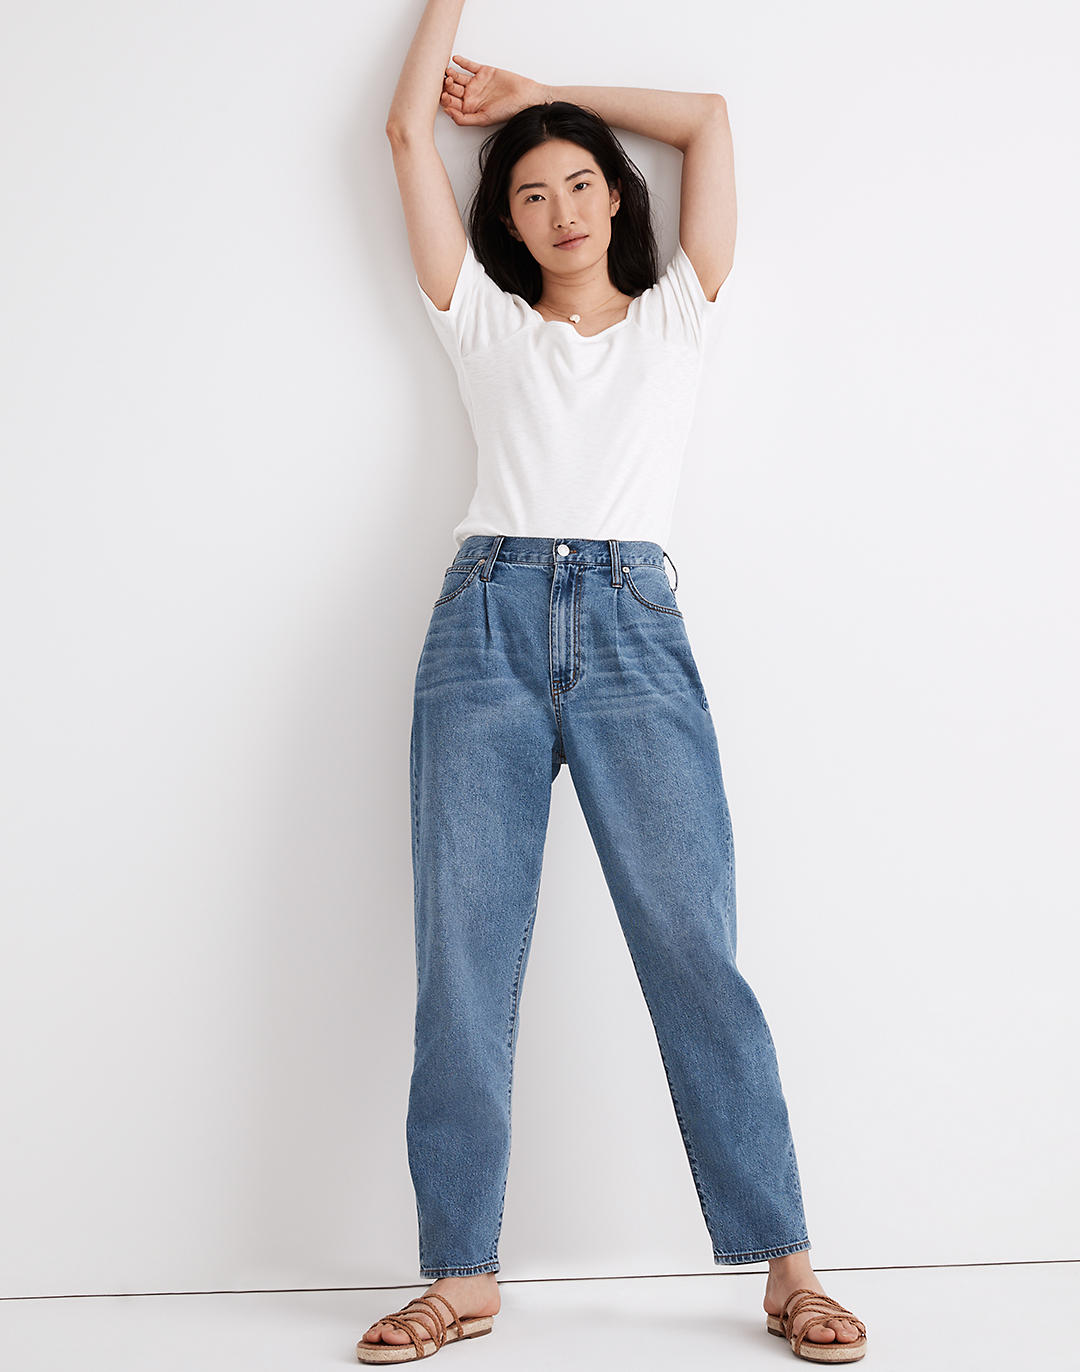 Baggy Tapered Jeans in Jewell Wash in jewell wash image 1